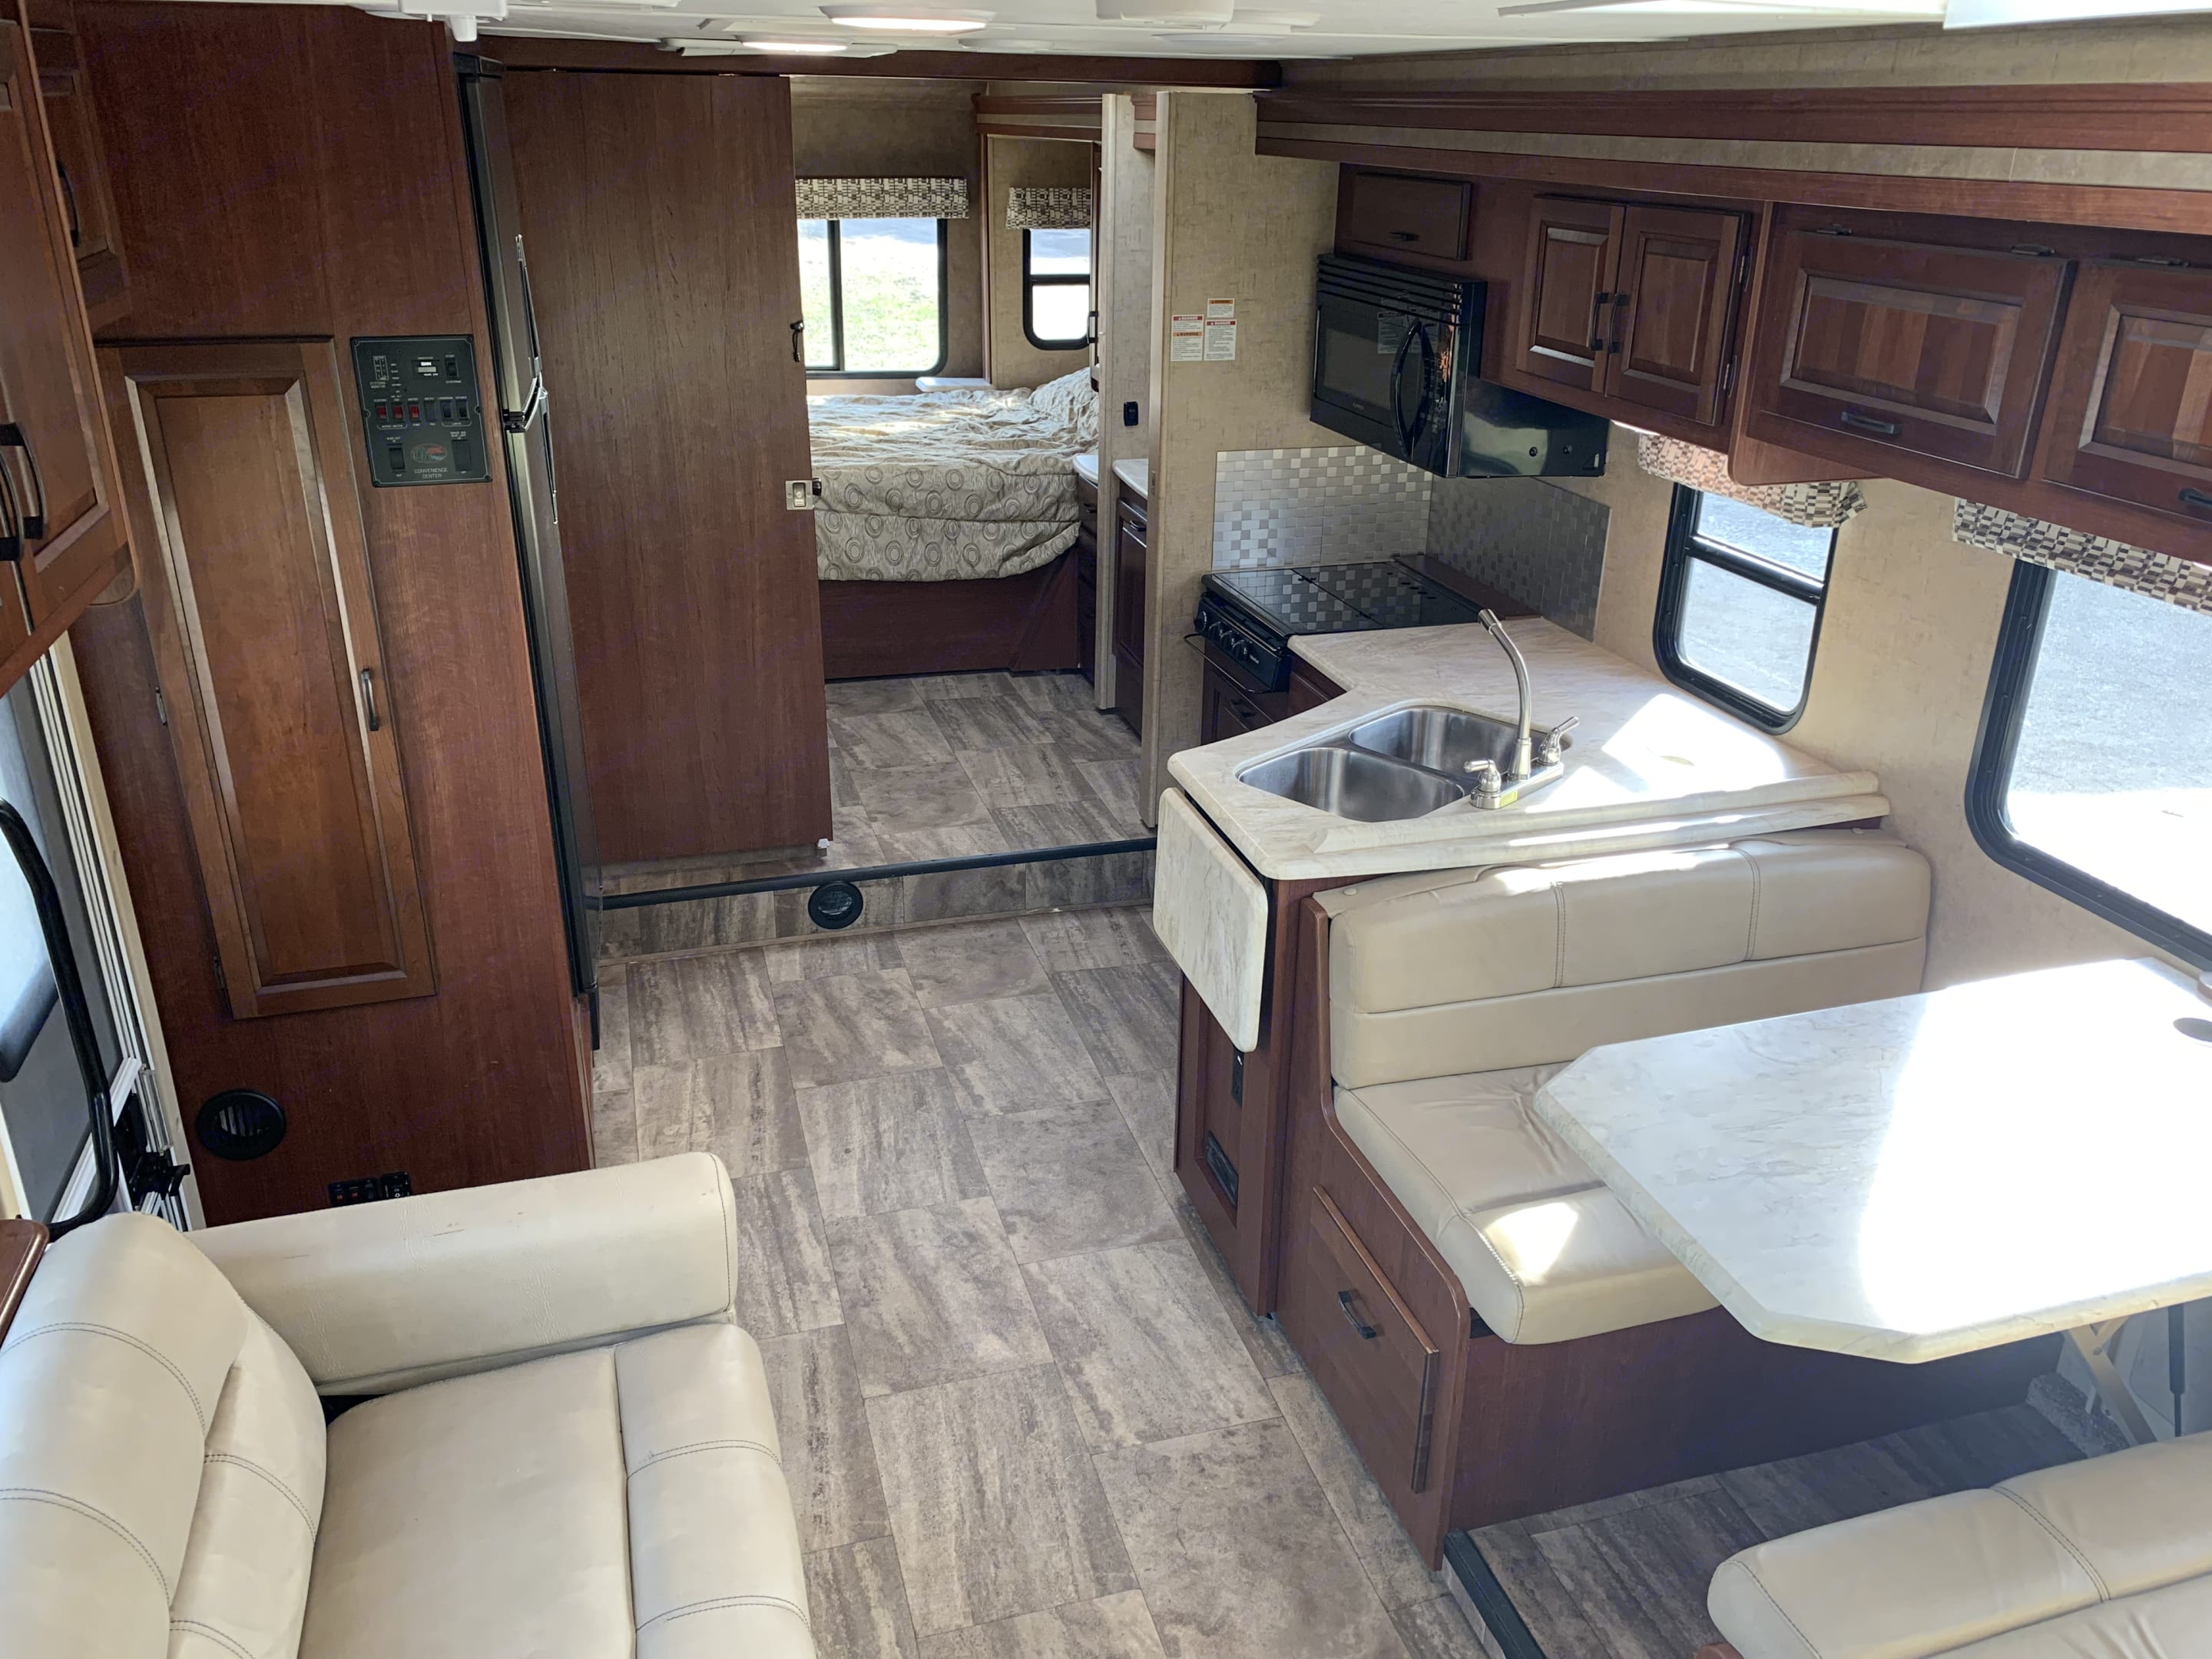 Large kitchen and dining room. Ford E450 2016